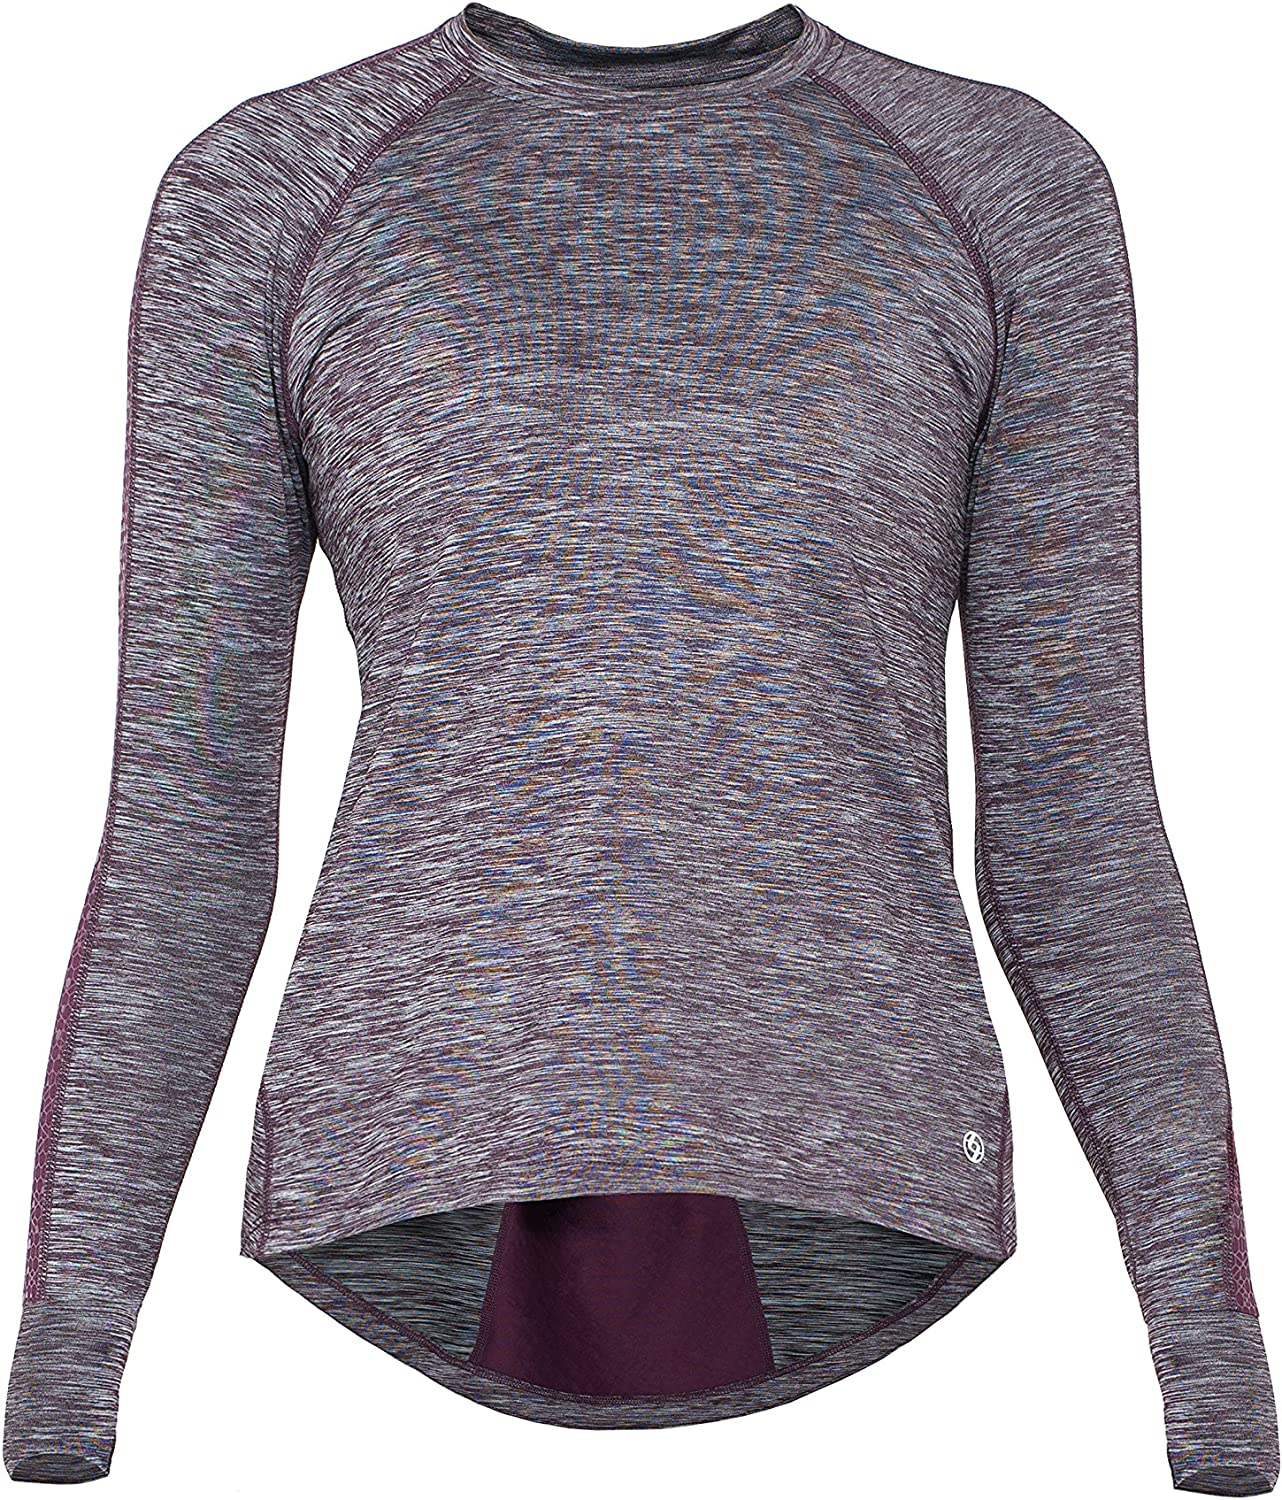 Lija Womens Glow Top